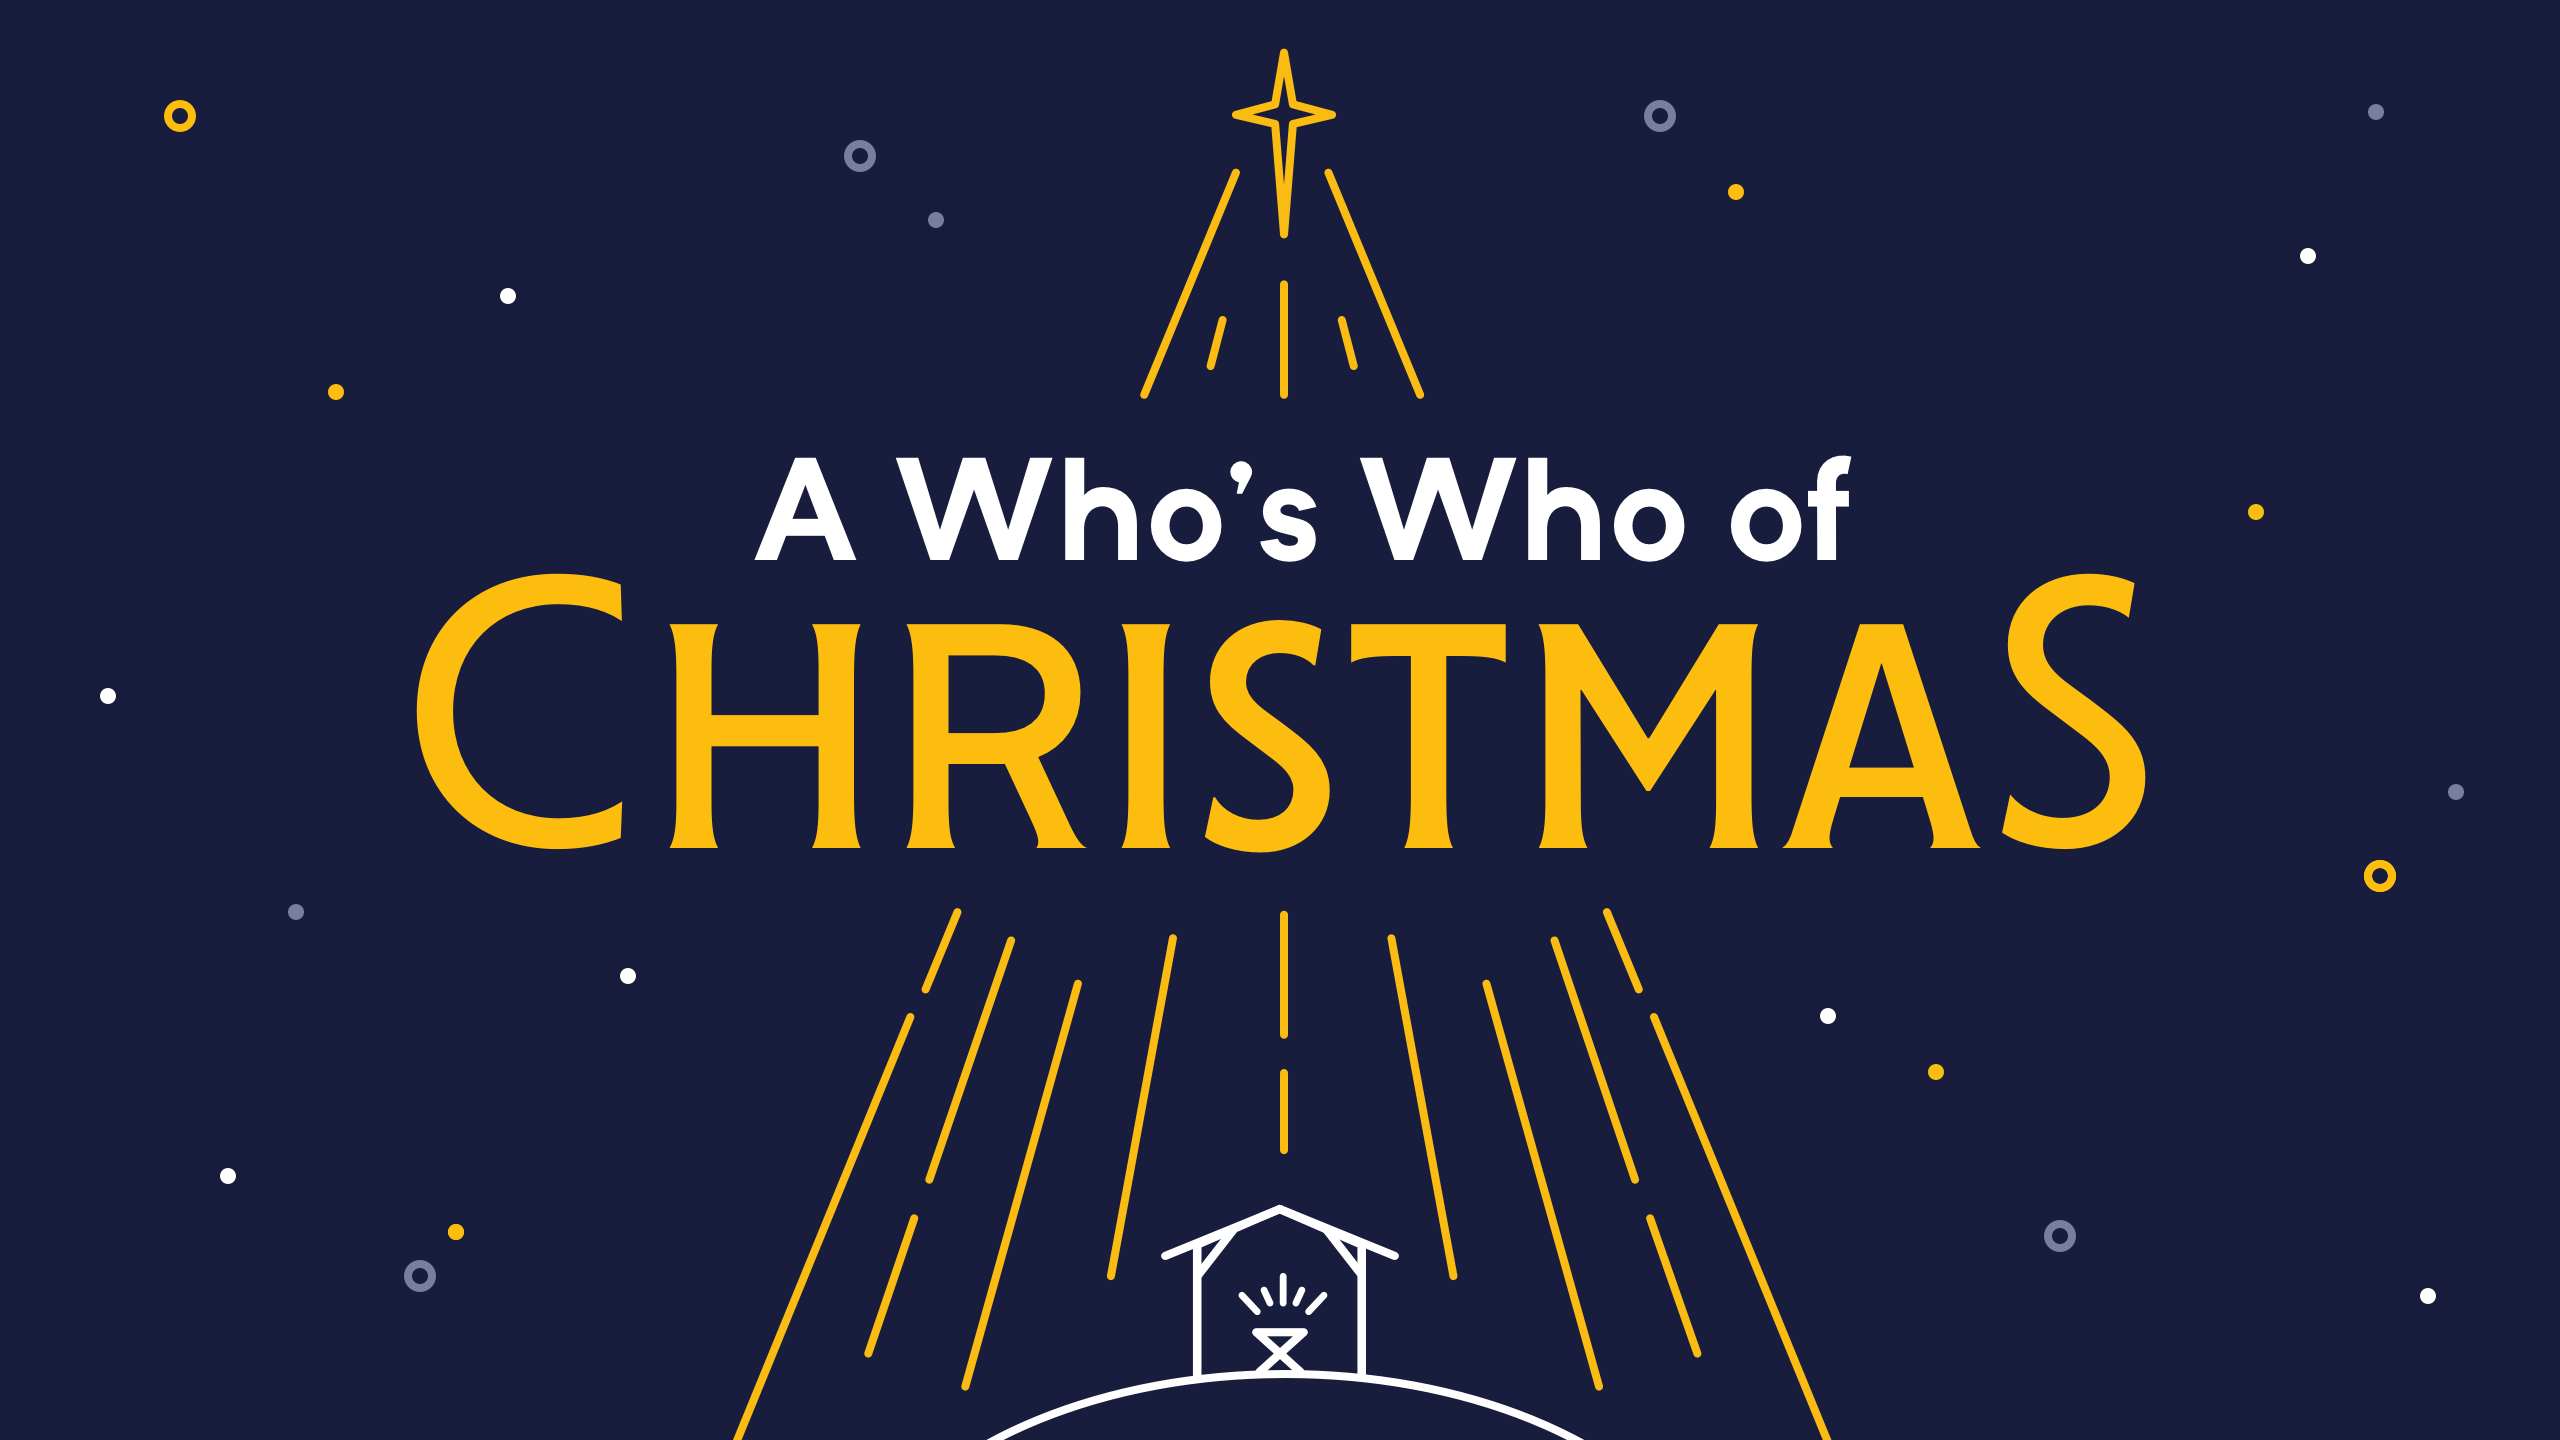 A Who's Who of Christmas